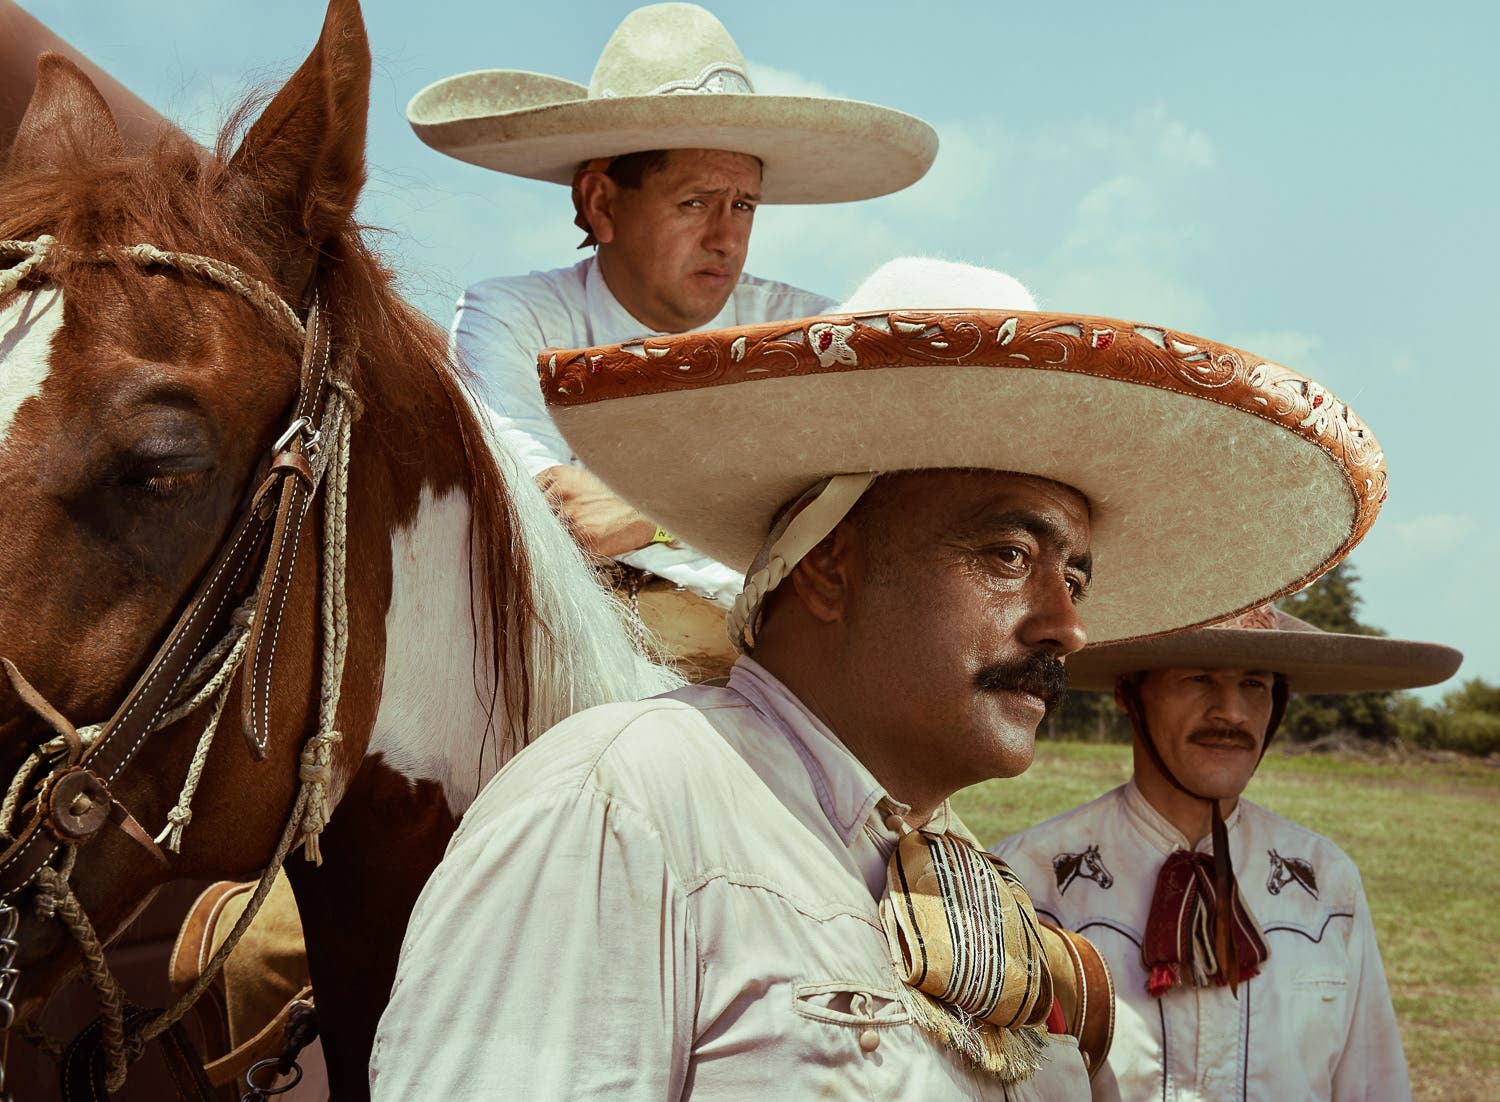 CHARREADA: A Peek Into the Mexican Origins of the American Rodeo